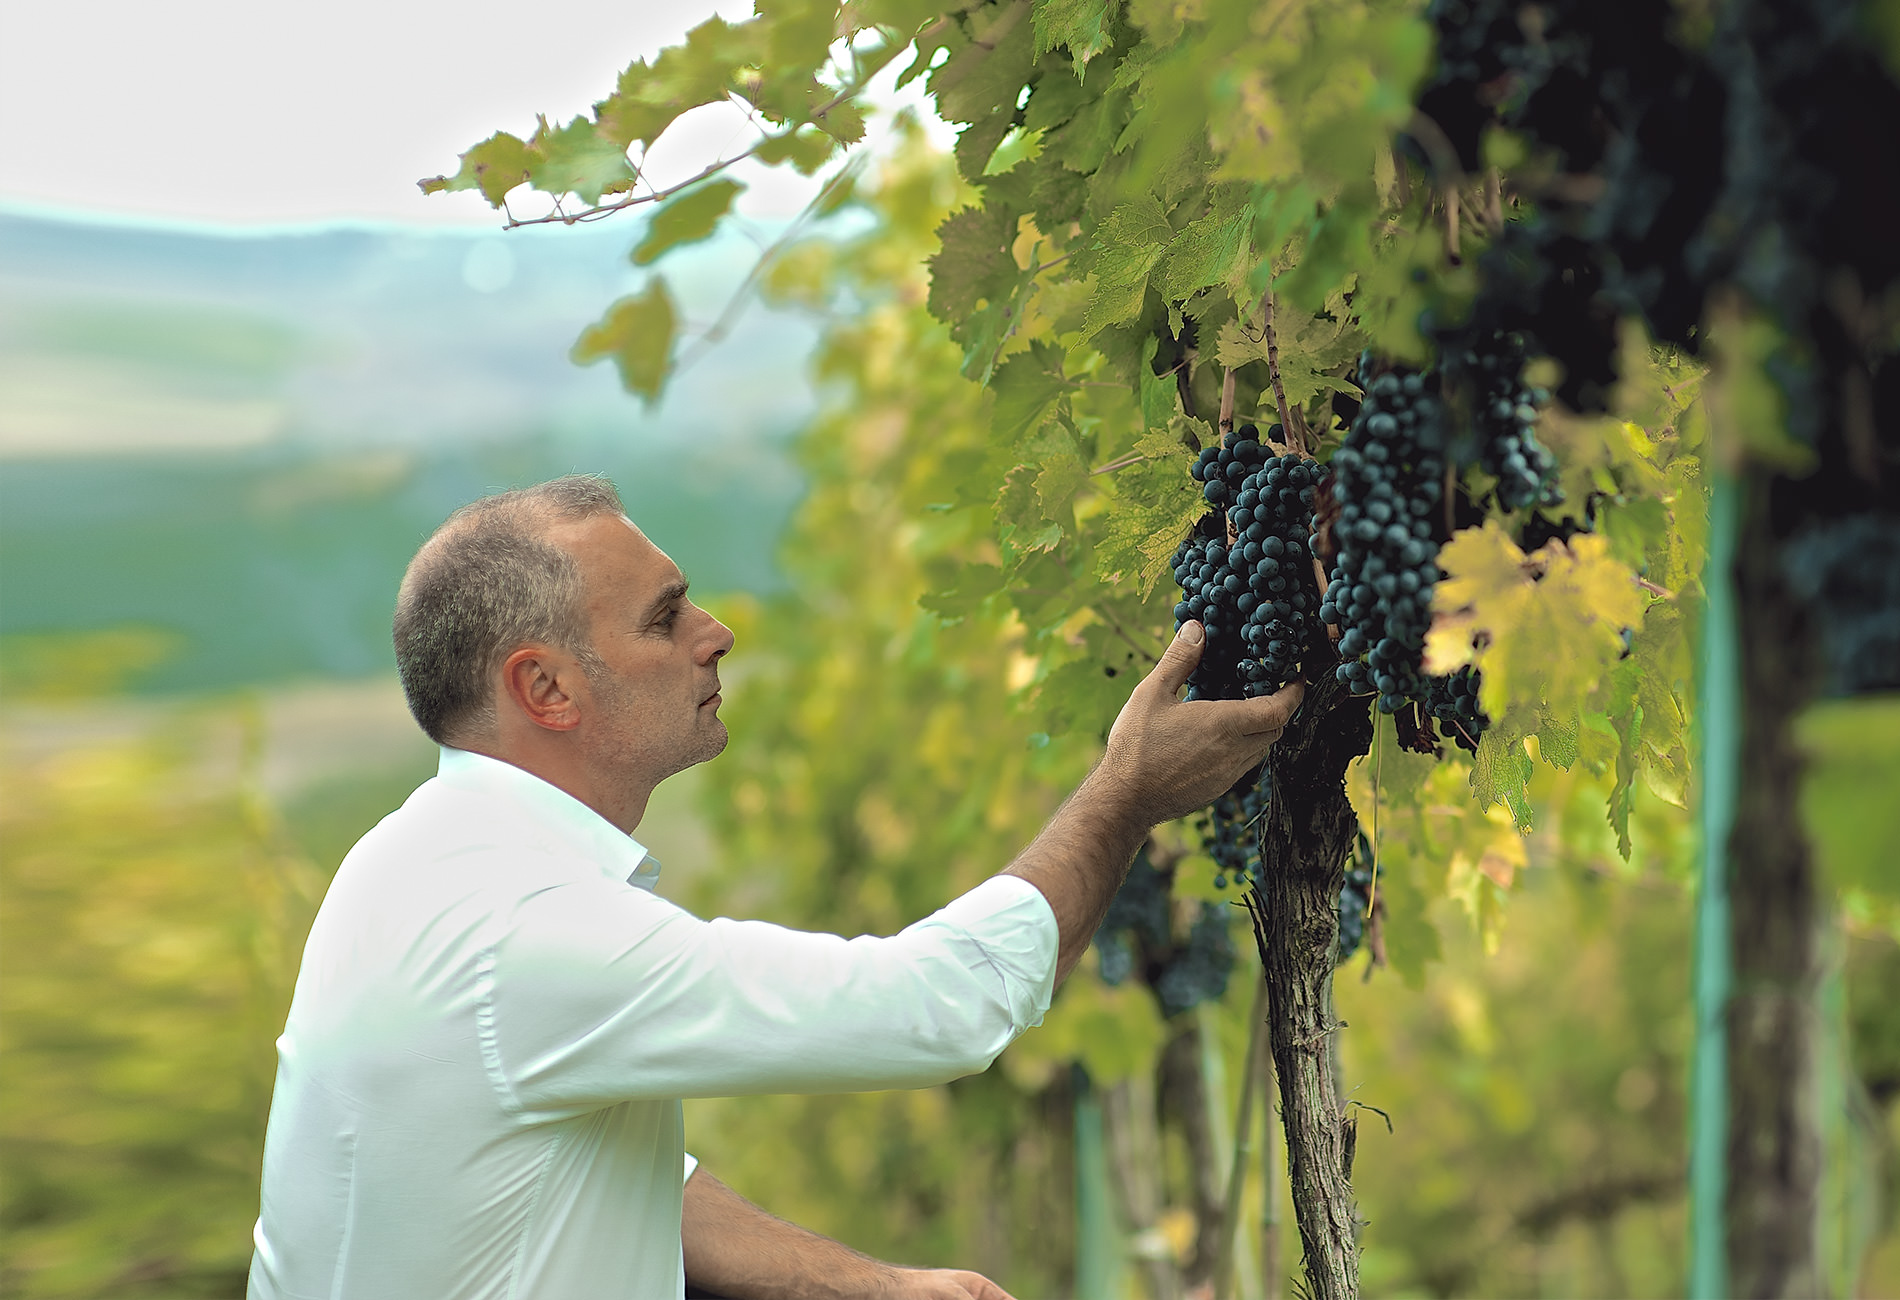 Claudio Cipressi checking the grapes in his Vineyard